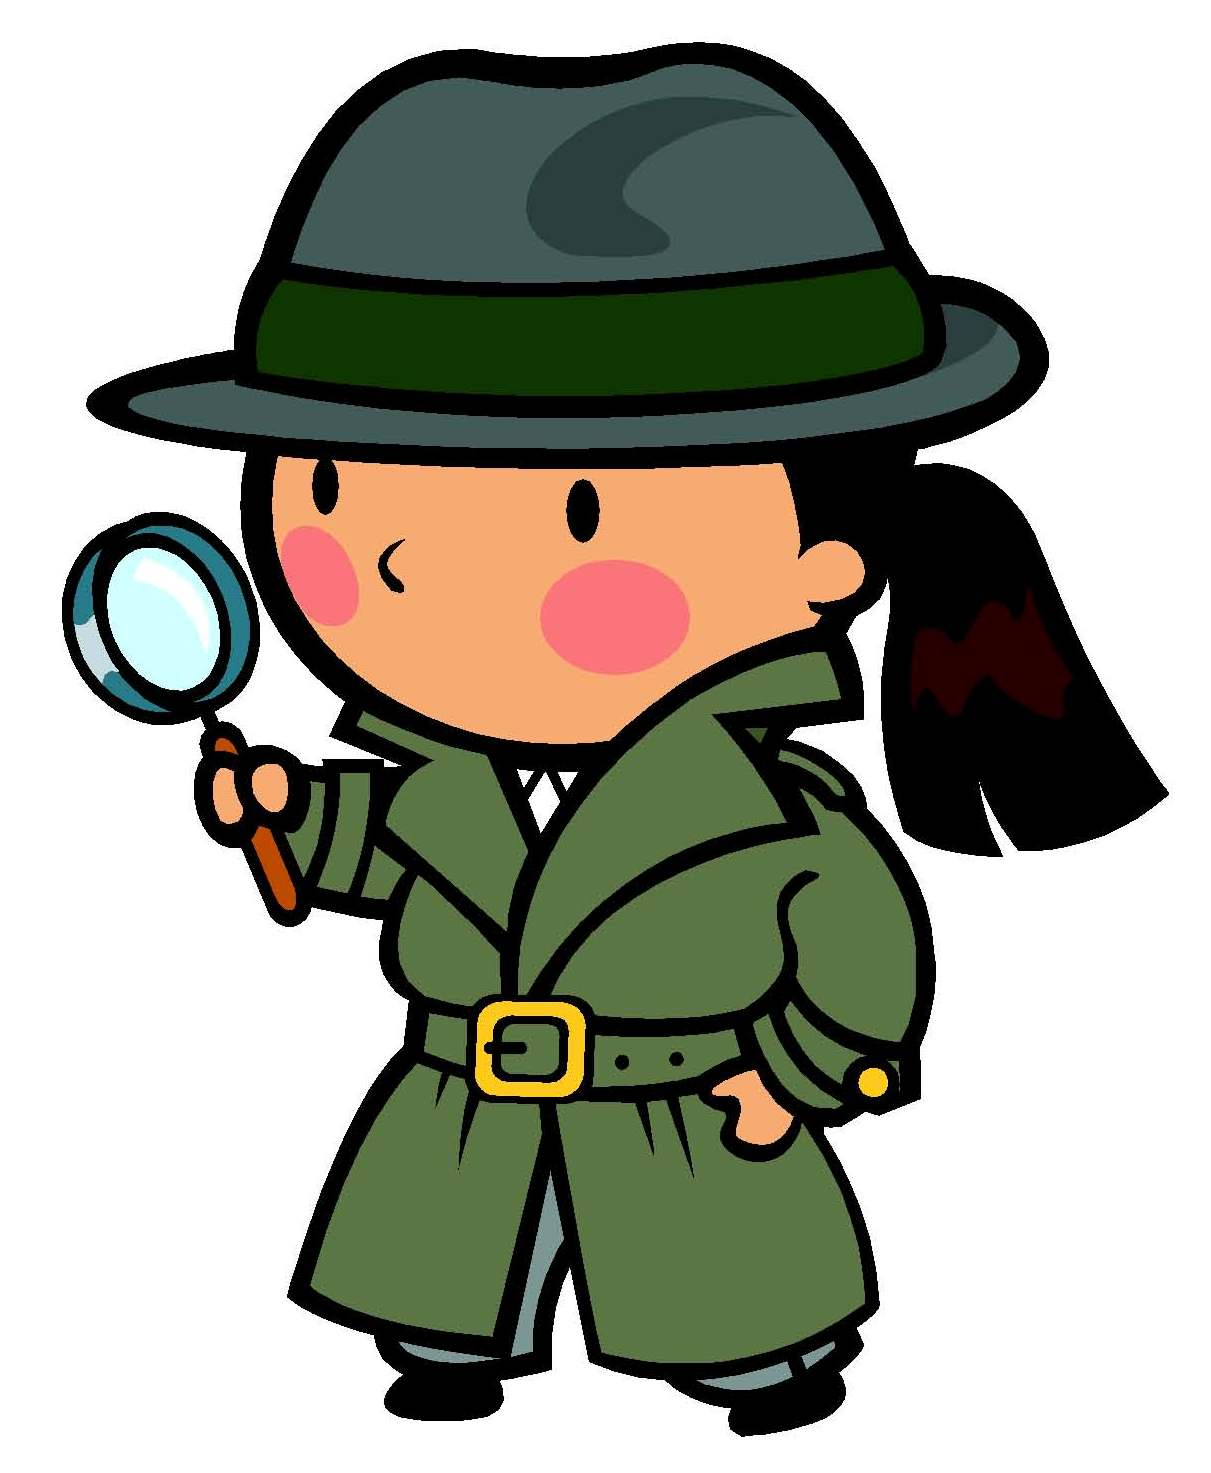 Sherlock Holmes clipart kid detective Detective Images Free For Kids